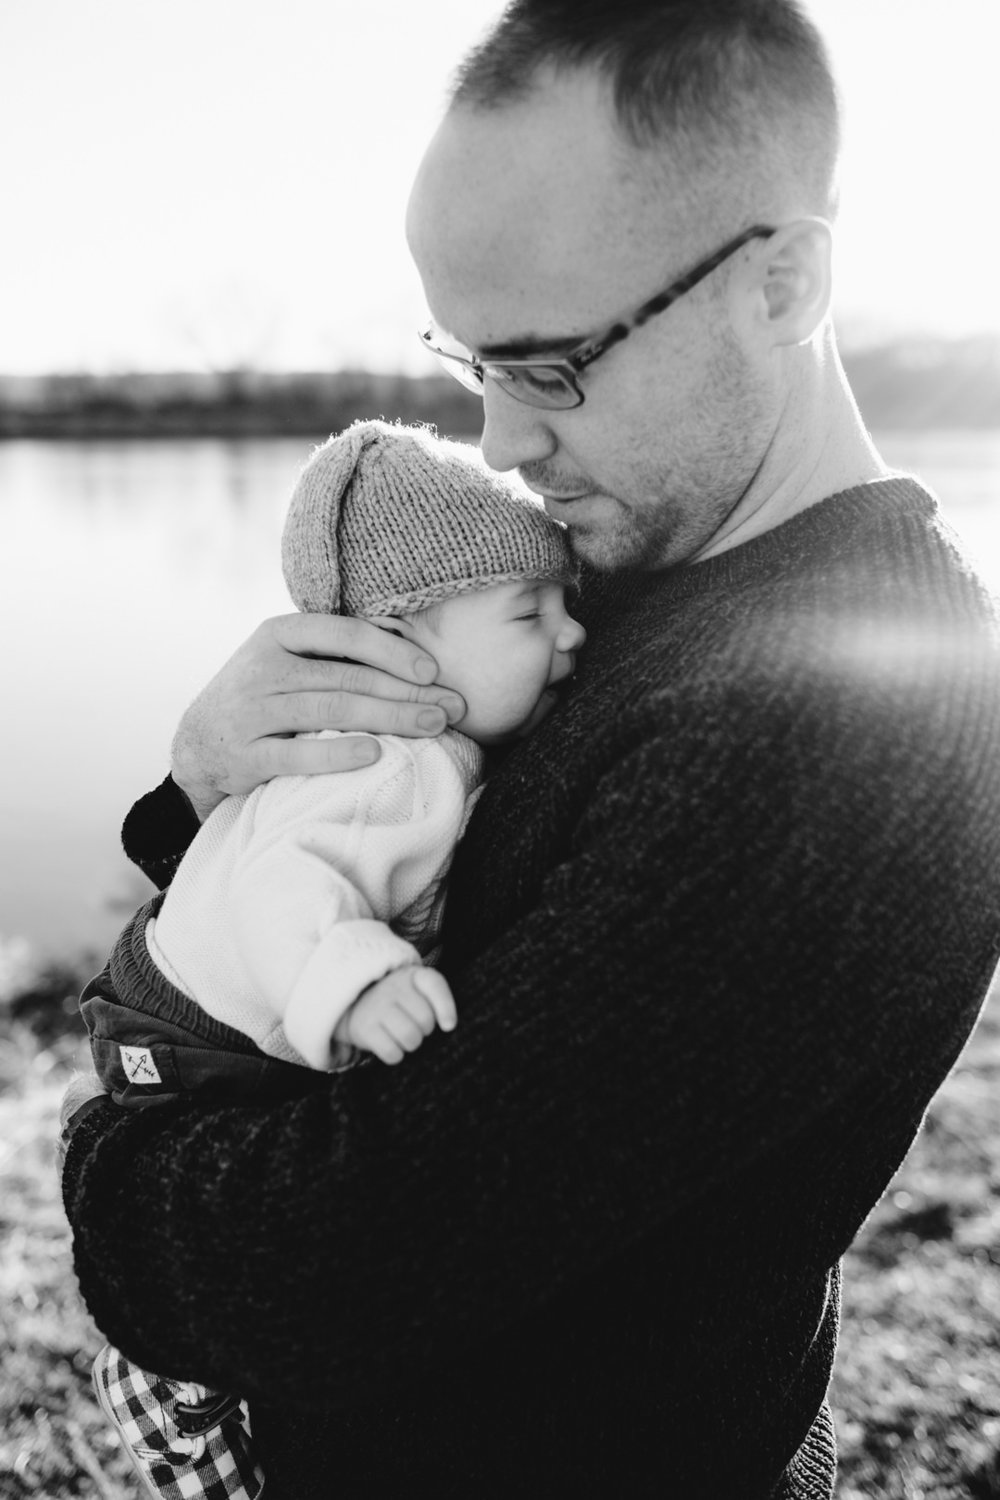 20171210_Kansas City Lifestyle Family Photographer _10.jpg